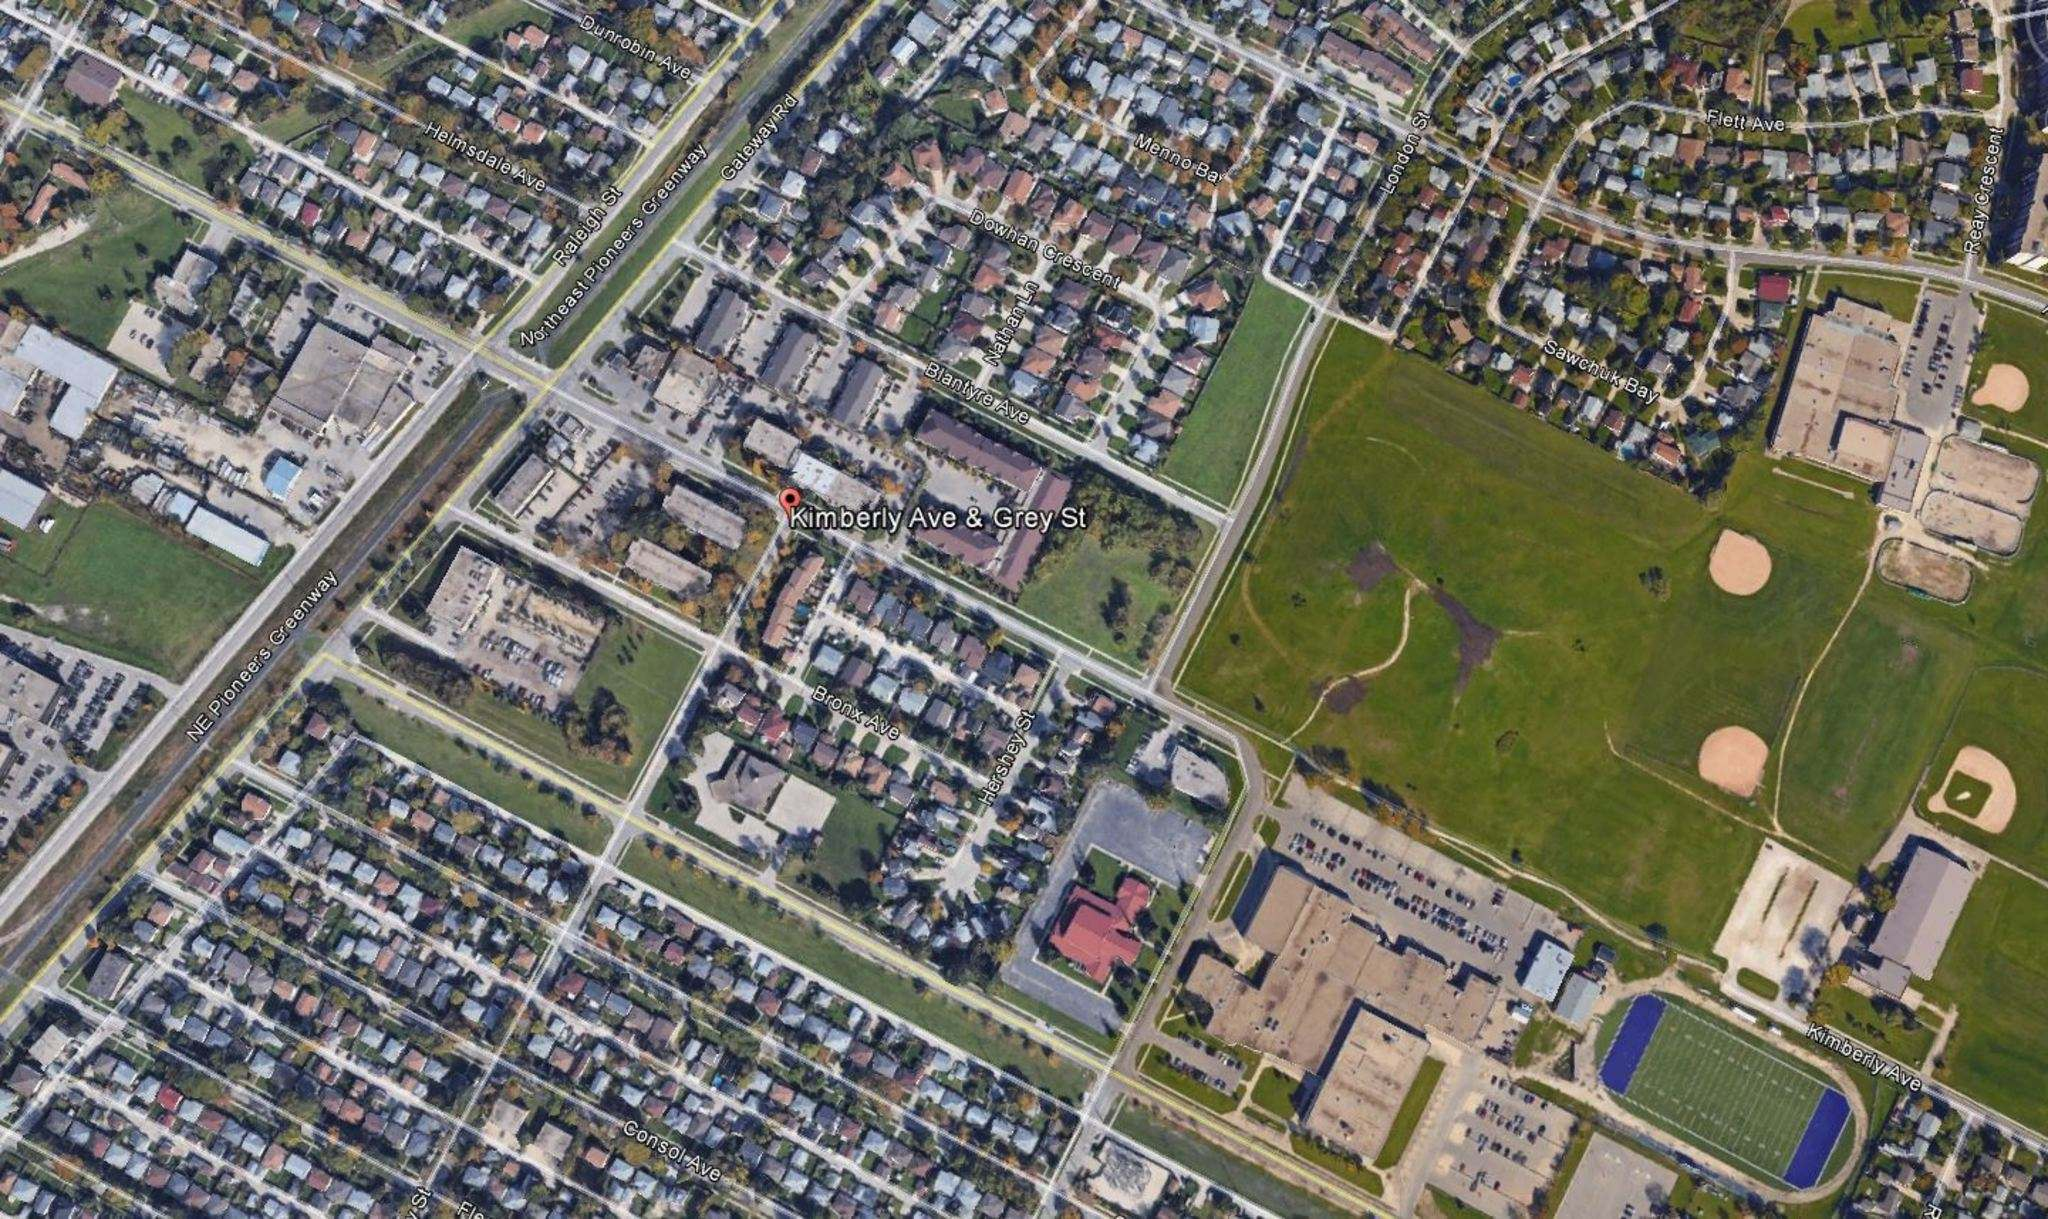 Thelma Krull was seen with the suspect near Kimberly Avenue and Grey Street and appeared to be in distress. Police believe the man would have had access to a residence in the area -- he may have been living there or staying temporarily in the area. (Google Earth)</p>